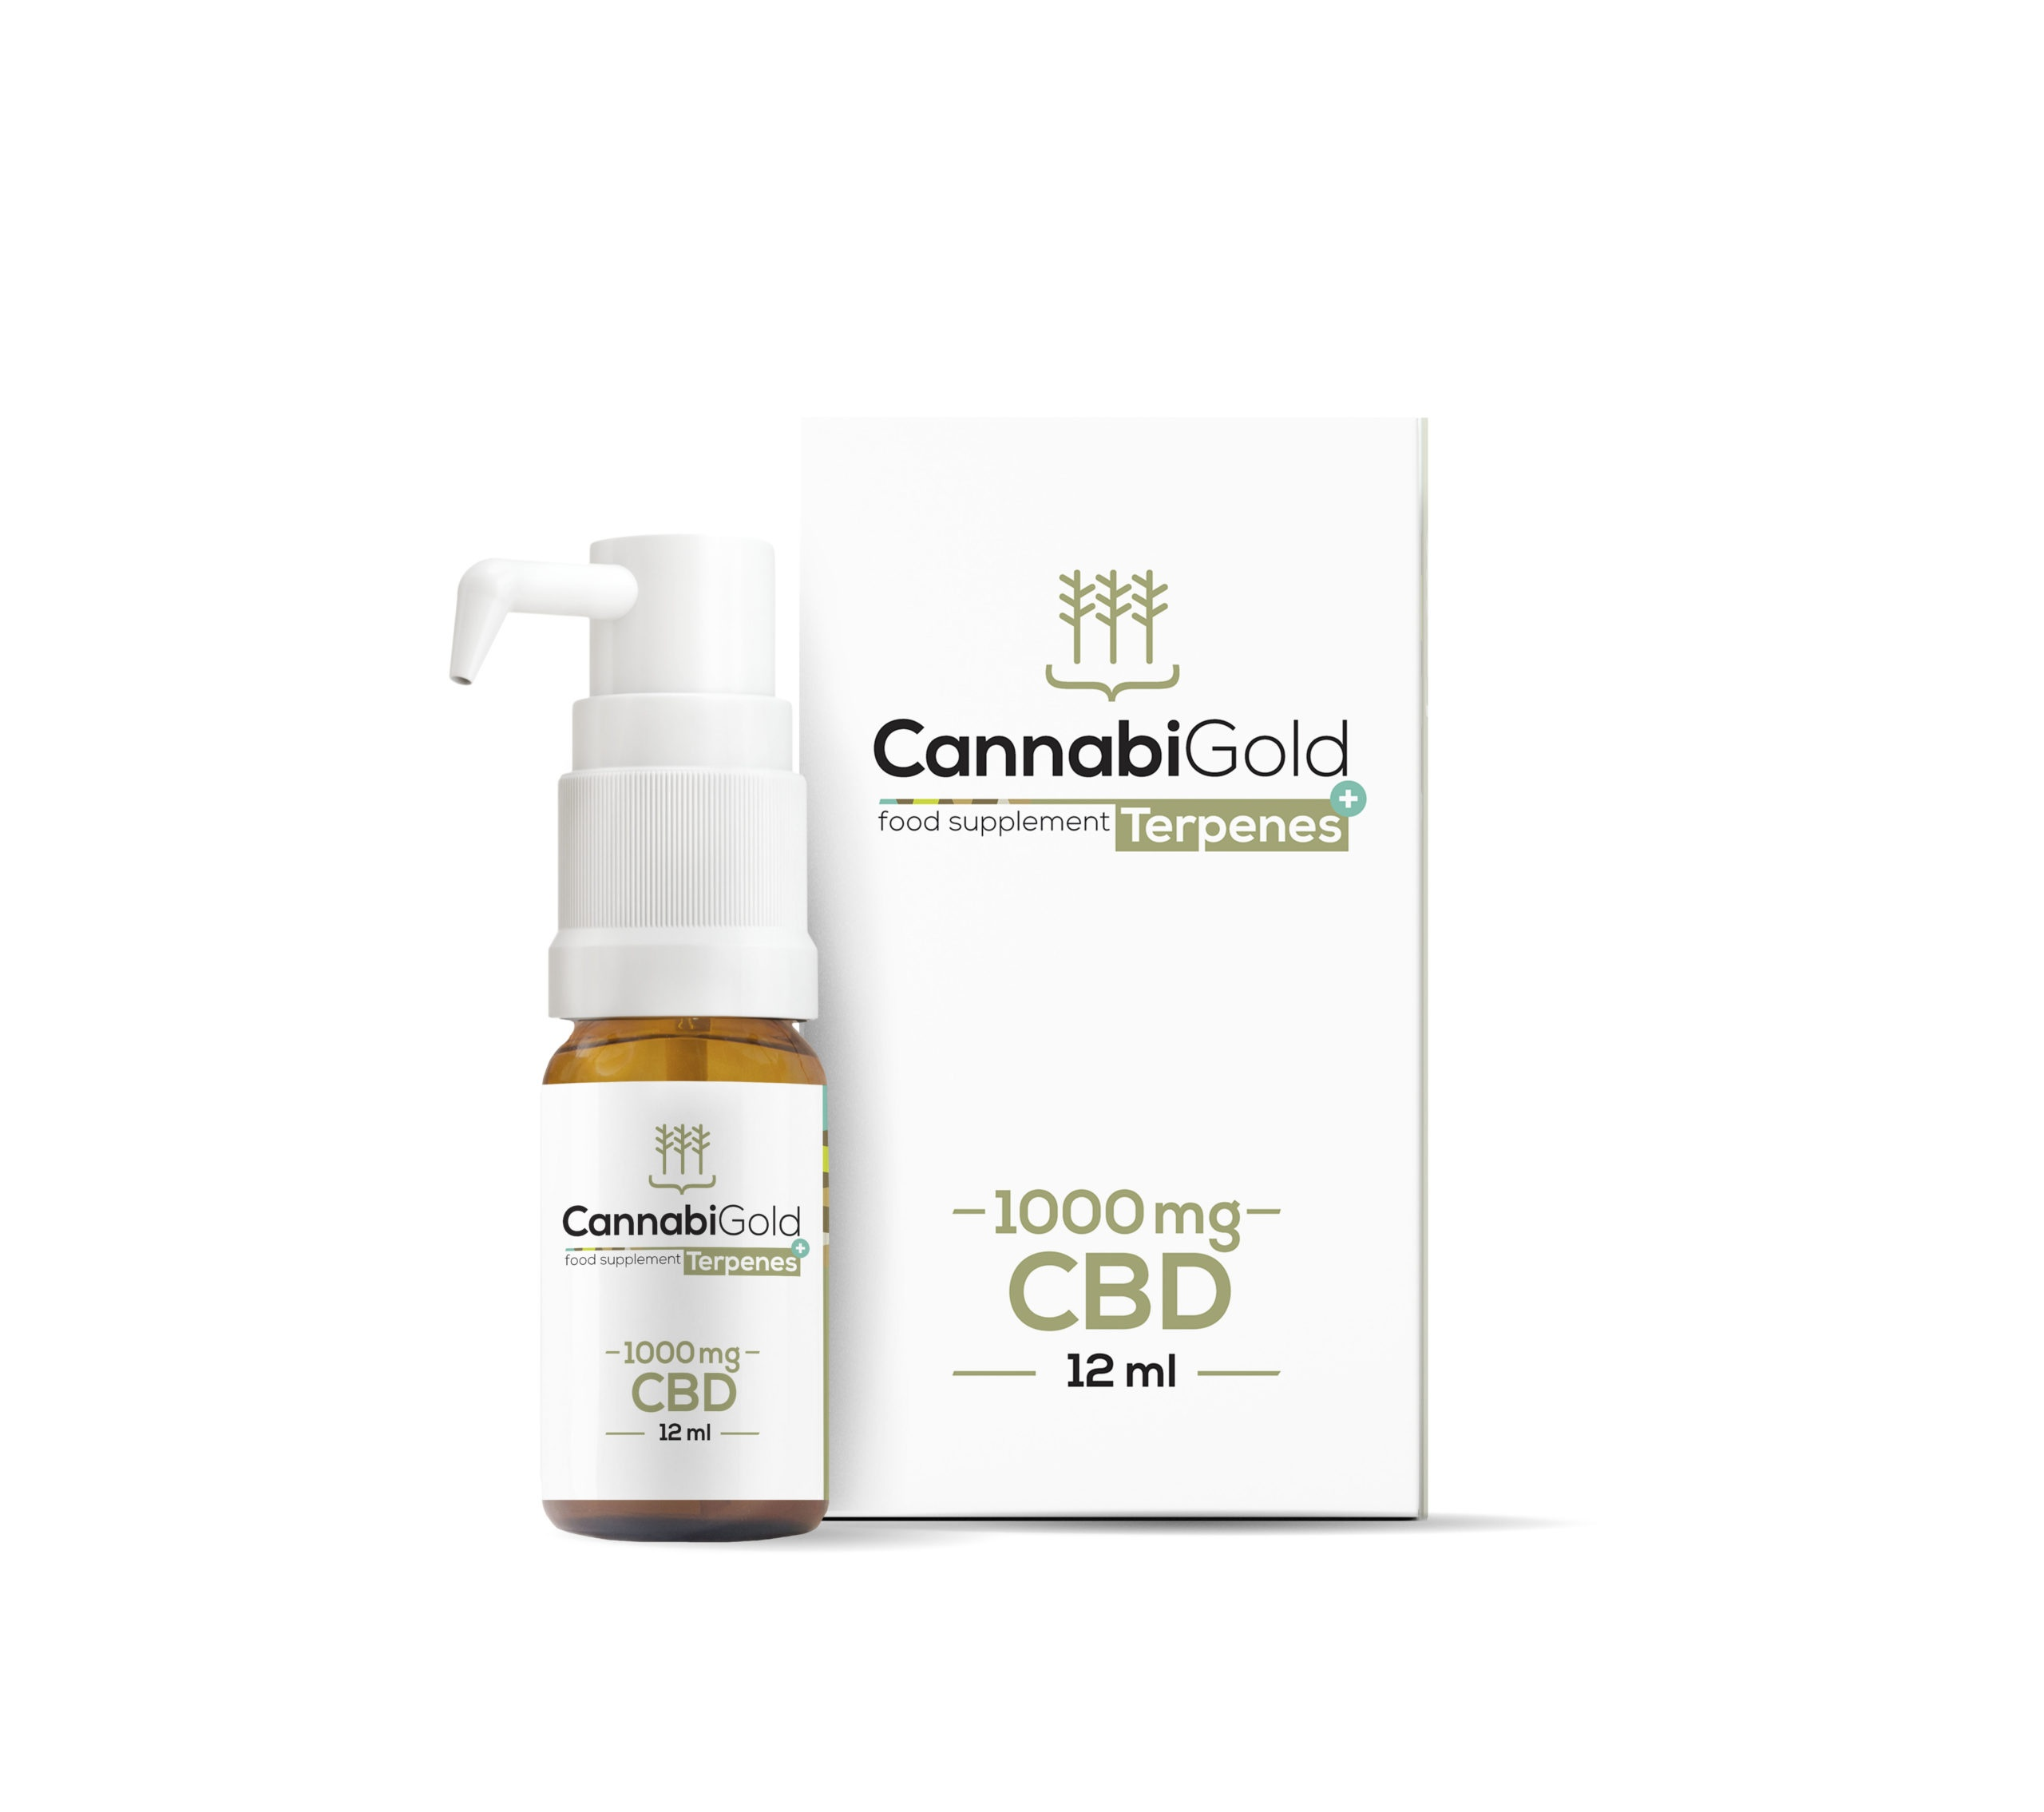 CannabiGold Terpenes+ 1000 mg CBD